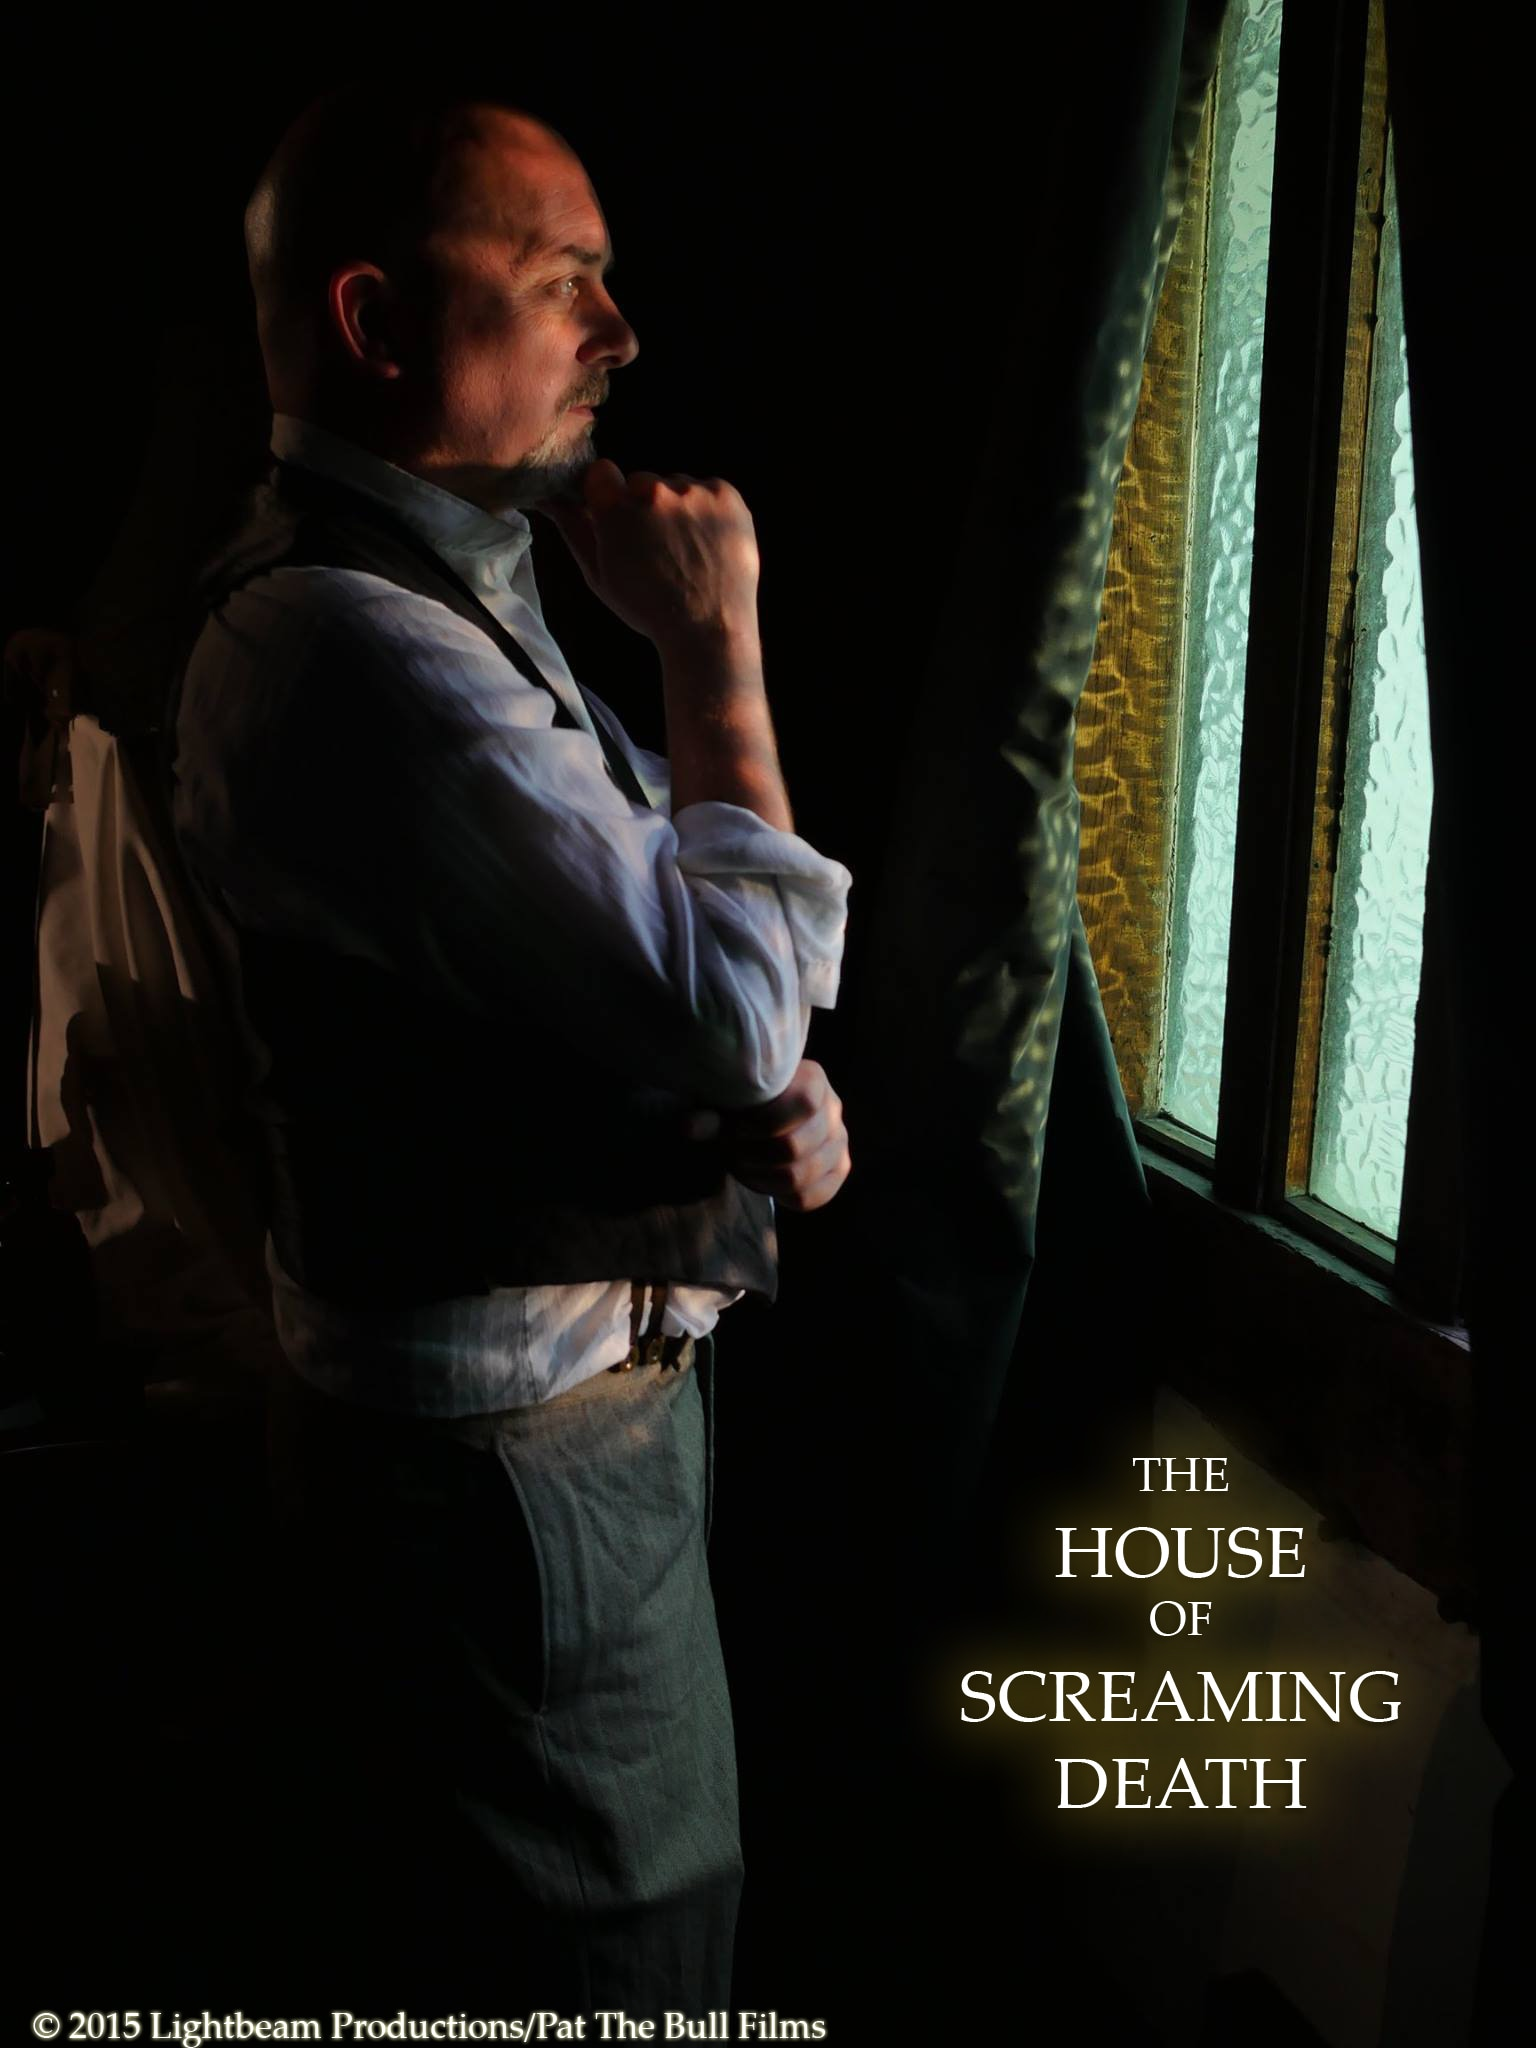 House of Screaming Death 11 - The House of Screaming Death Wraps First Phase of Production